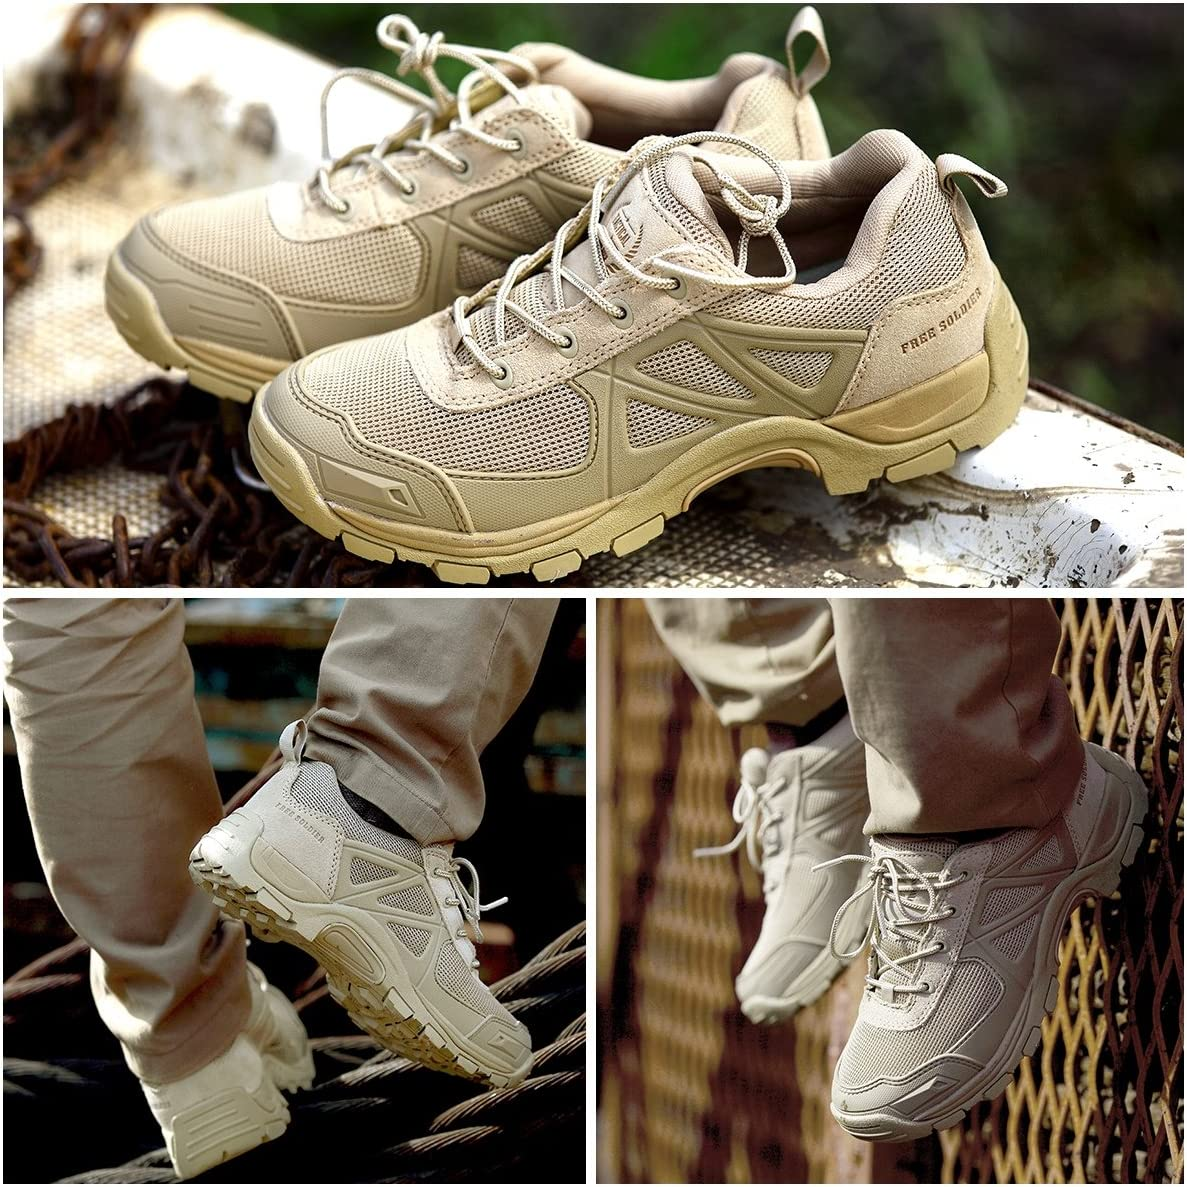 FREE SOLDIER Outdoor Rapid Non-Slip Camping Hiking Boots Mountain All-Terrain Off-Road Shoes